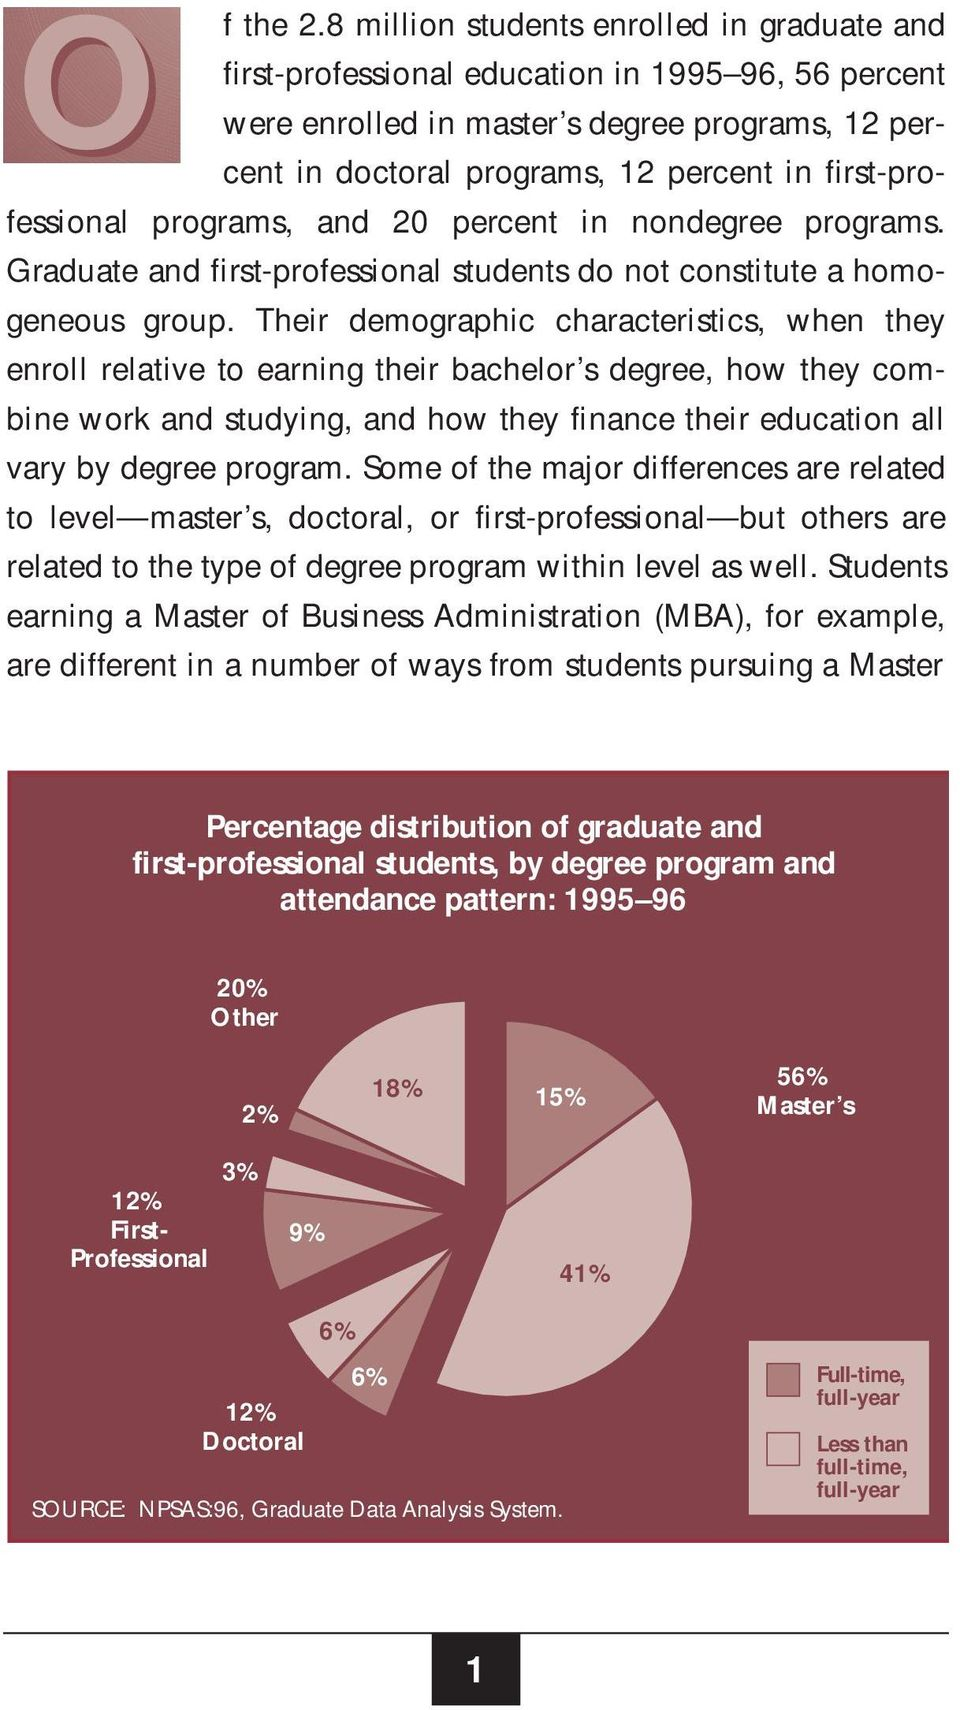 first-professional programs, and 20 percent in nondegree programs. Graduate and first-professional students do not constitute a homogeneous group.